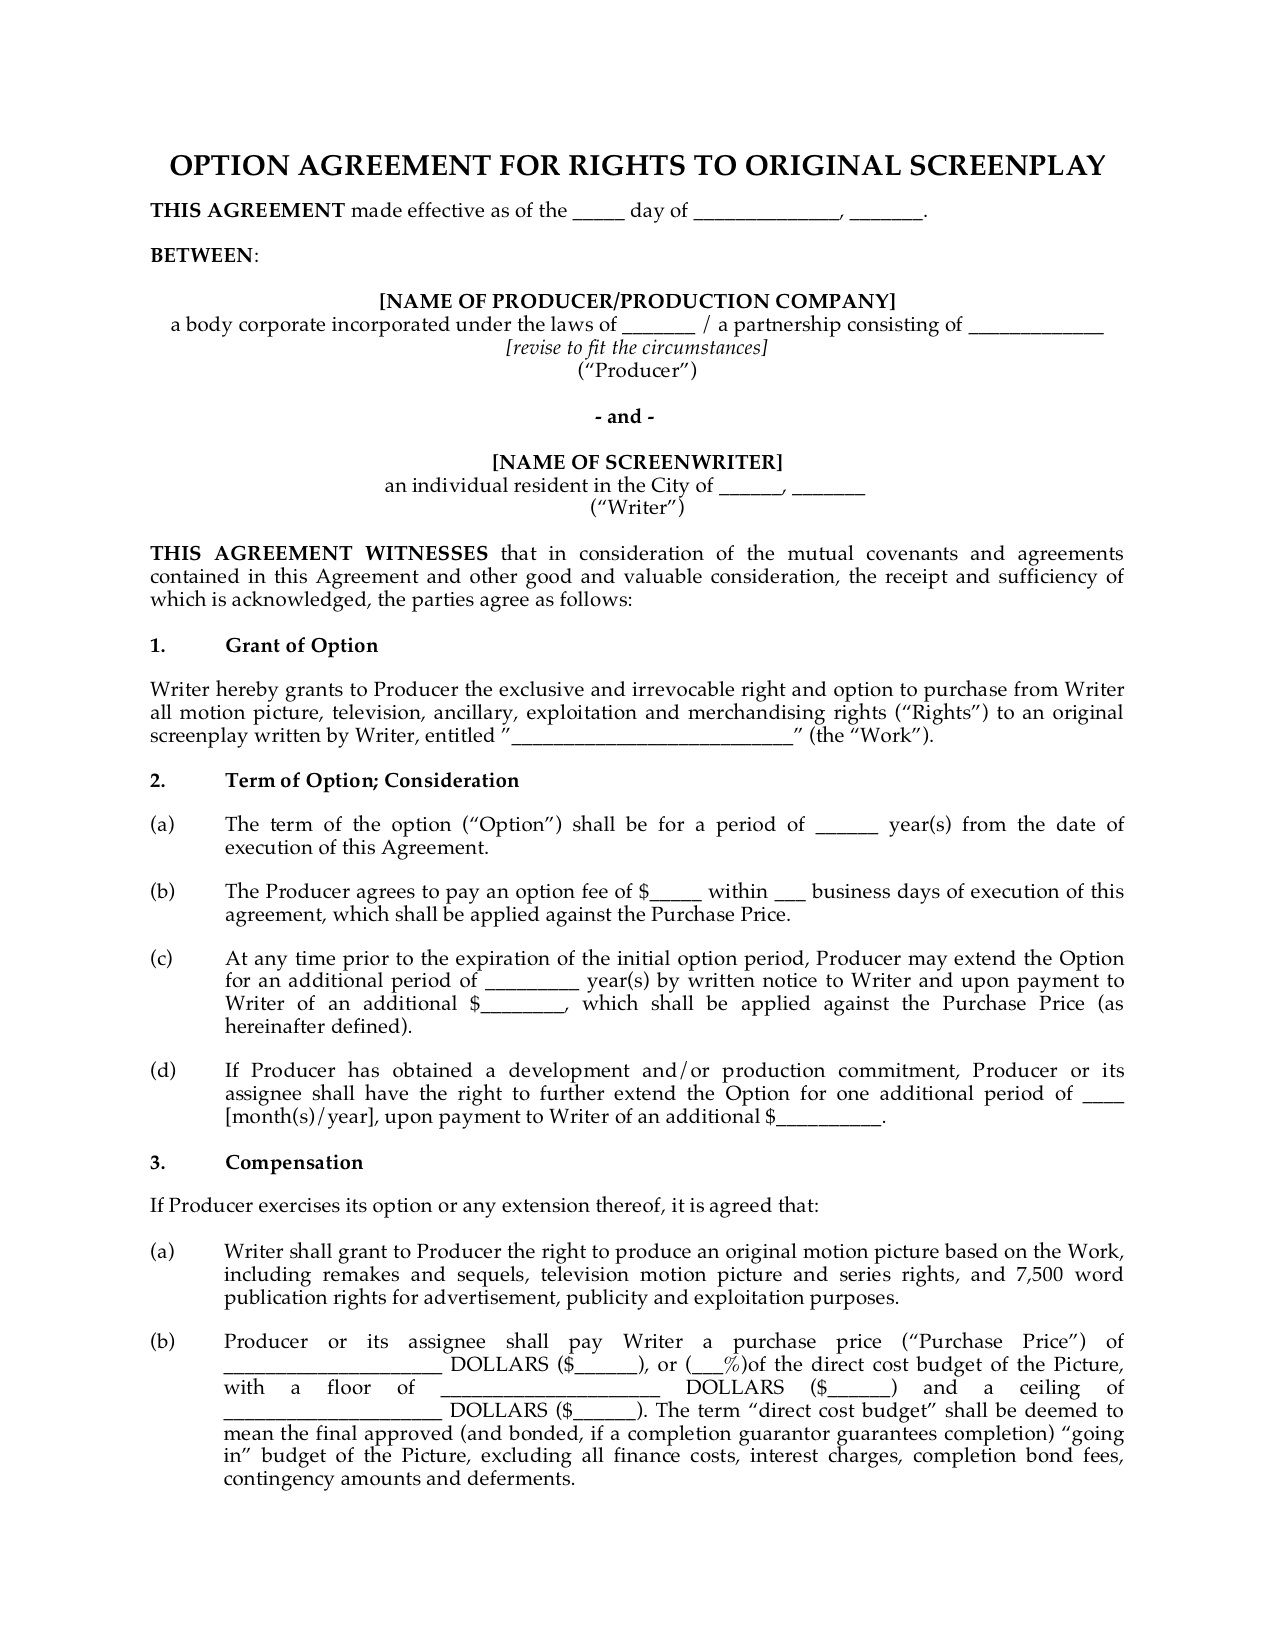 Option Agreement For Rights To Original Screenplay HttpWww